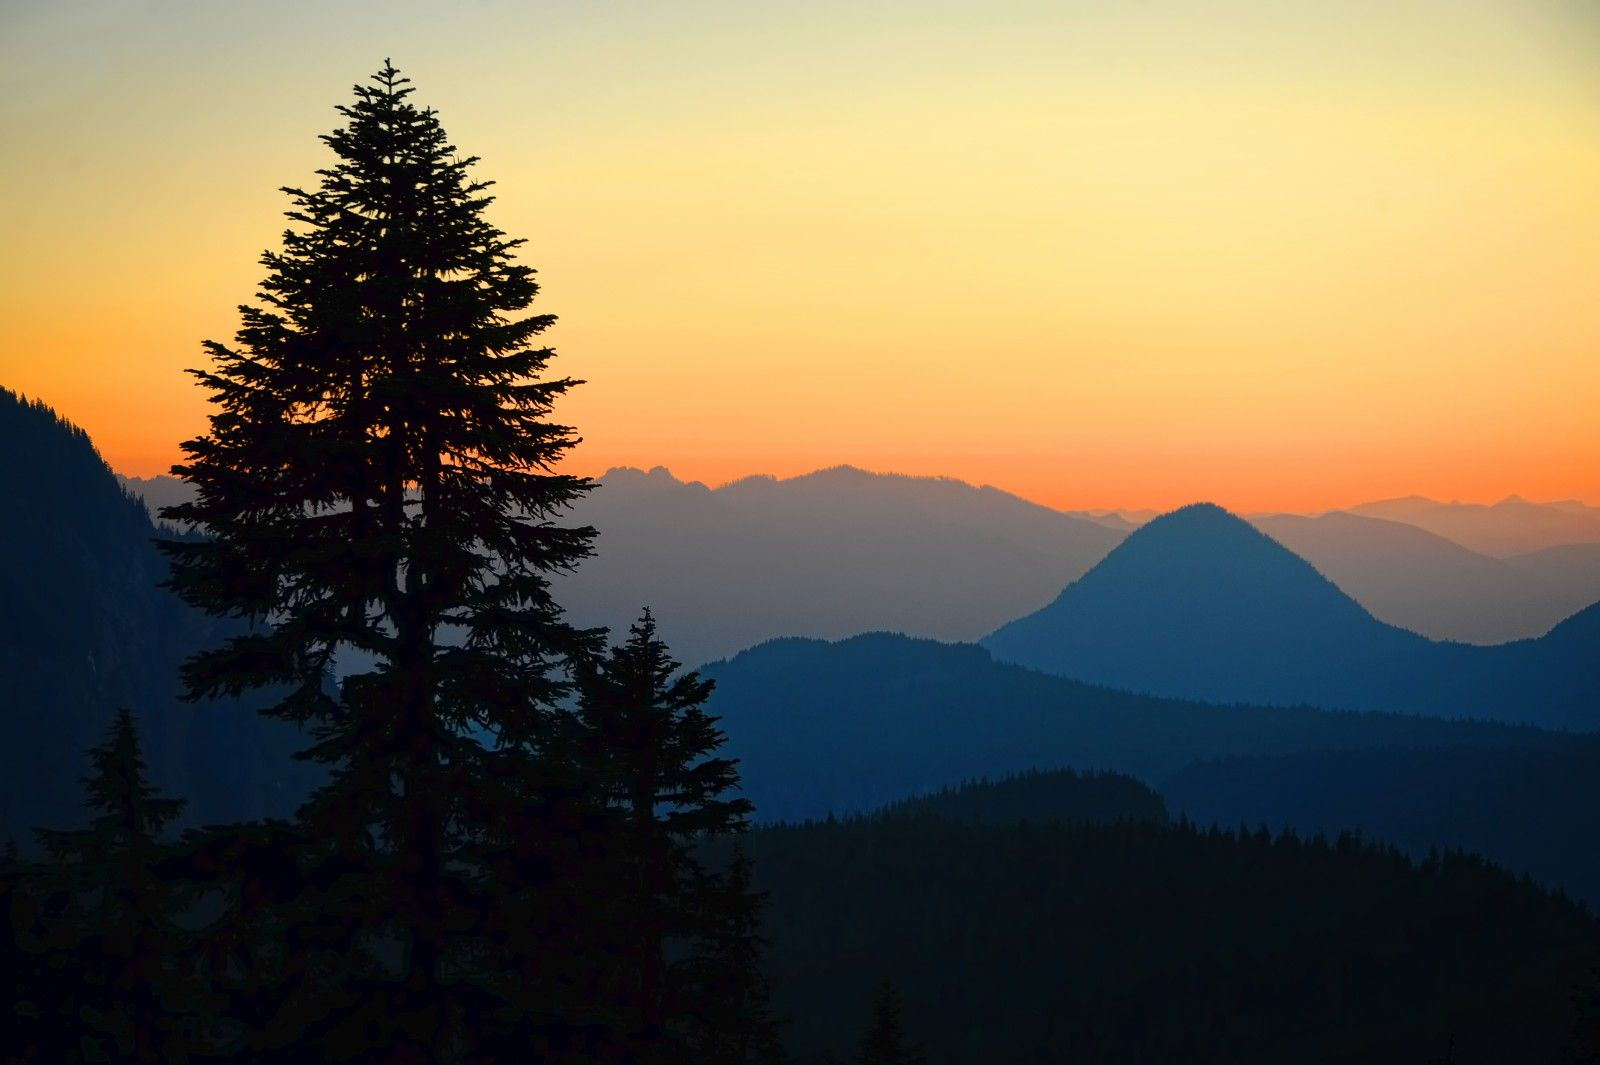 Mt. Rainier, WA.-Washington State is home to three, beautiful National Parks; Mt. Rainier, Olympic and North Cascades. Now folks can enter to win two nights at each Park, plus an annual National Park Pass, as part of a Centennial celebration promotion sponsored by Visit Rainier, the Olympic Peninsula Tourism Commission, and the Cascade Loop. The […]